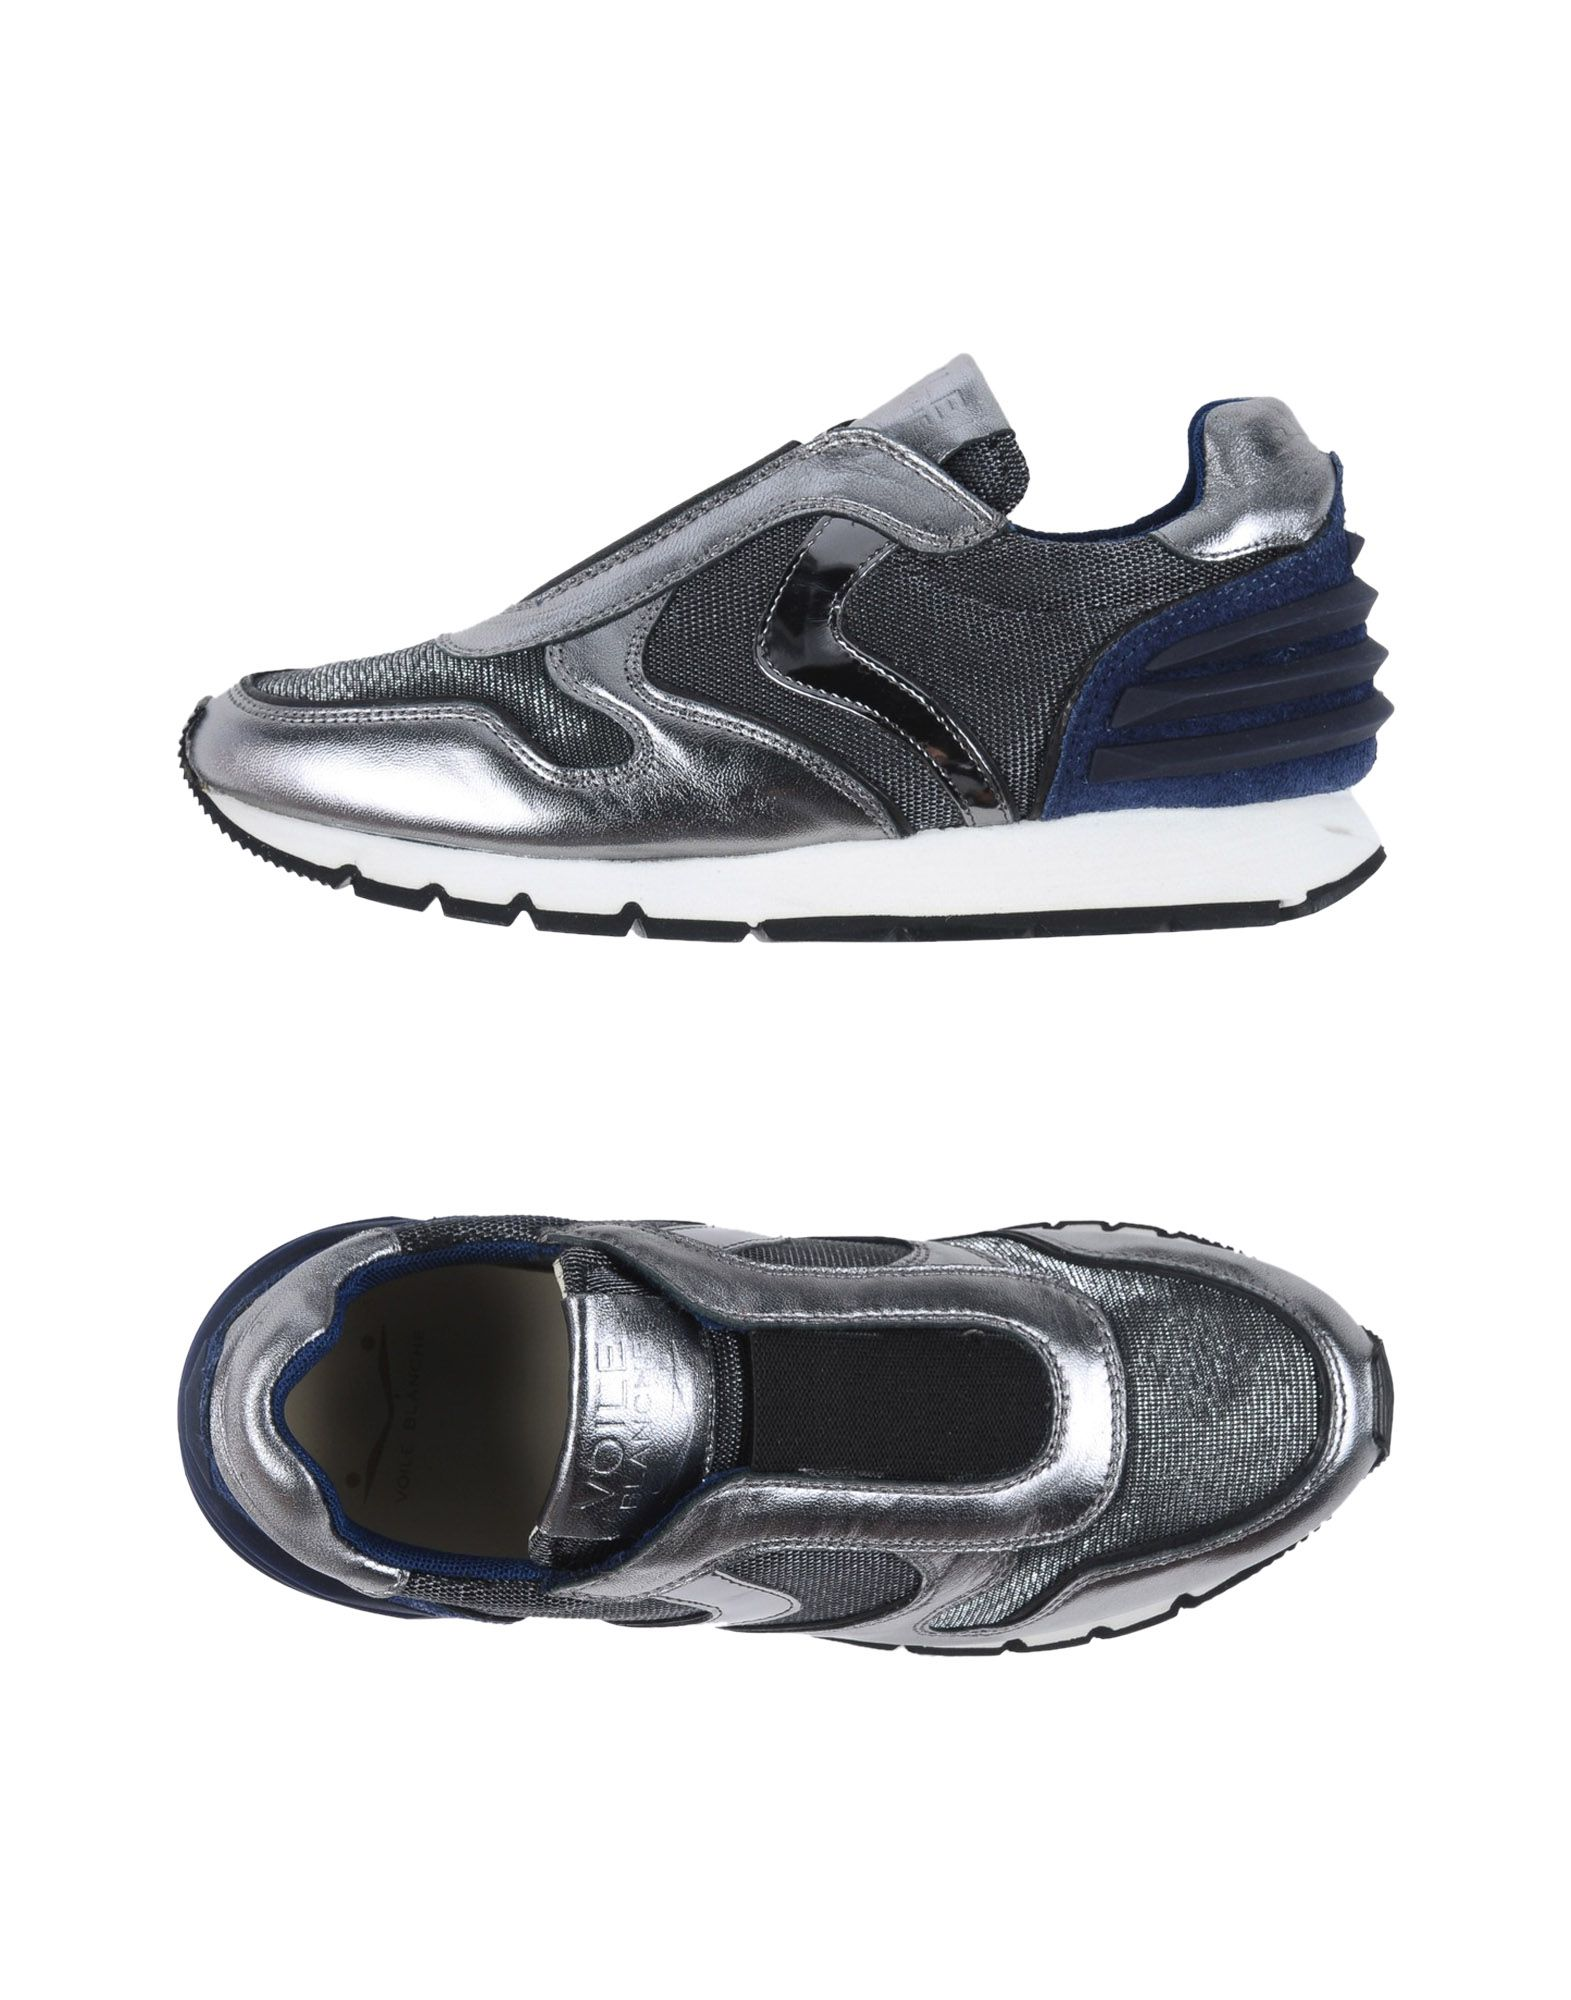 Voile on Blanche Sneakers - Women Voile Blanche Sneakers online on Voile  Canada - 11249147HP 480bd3